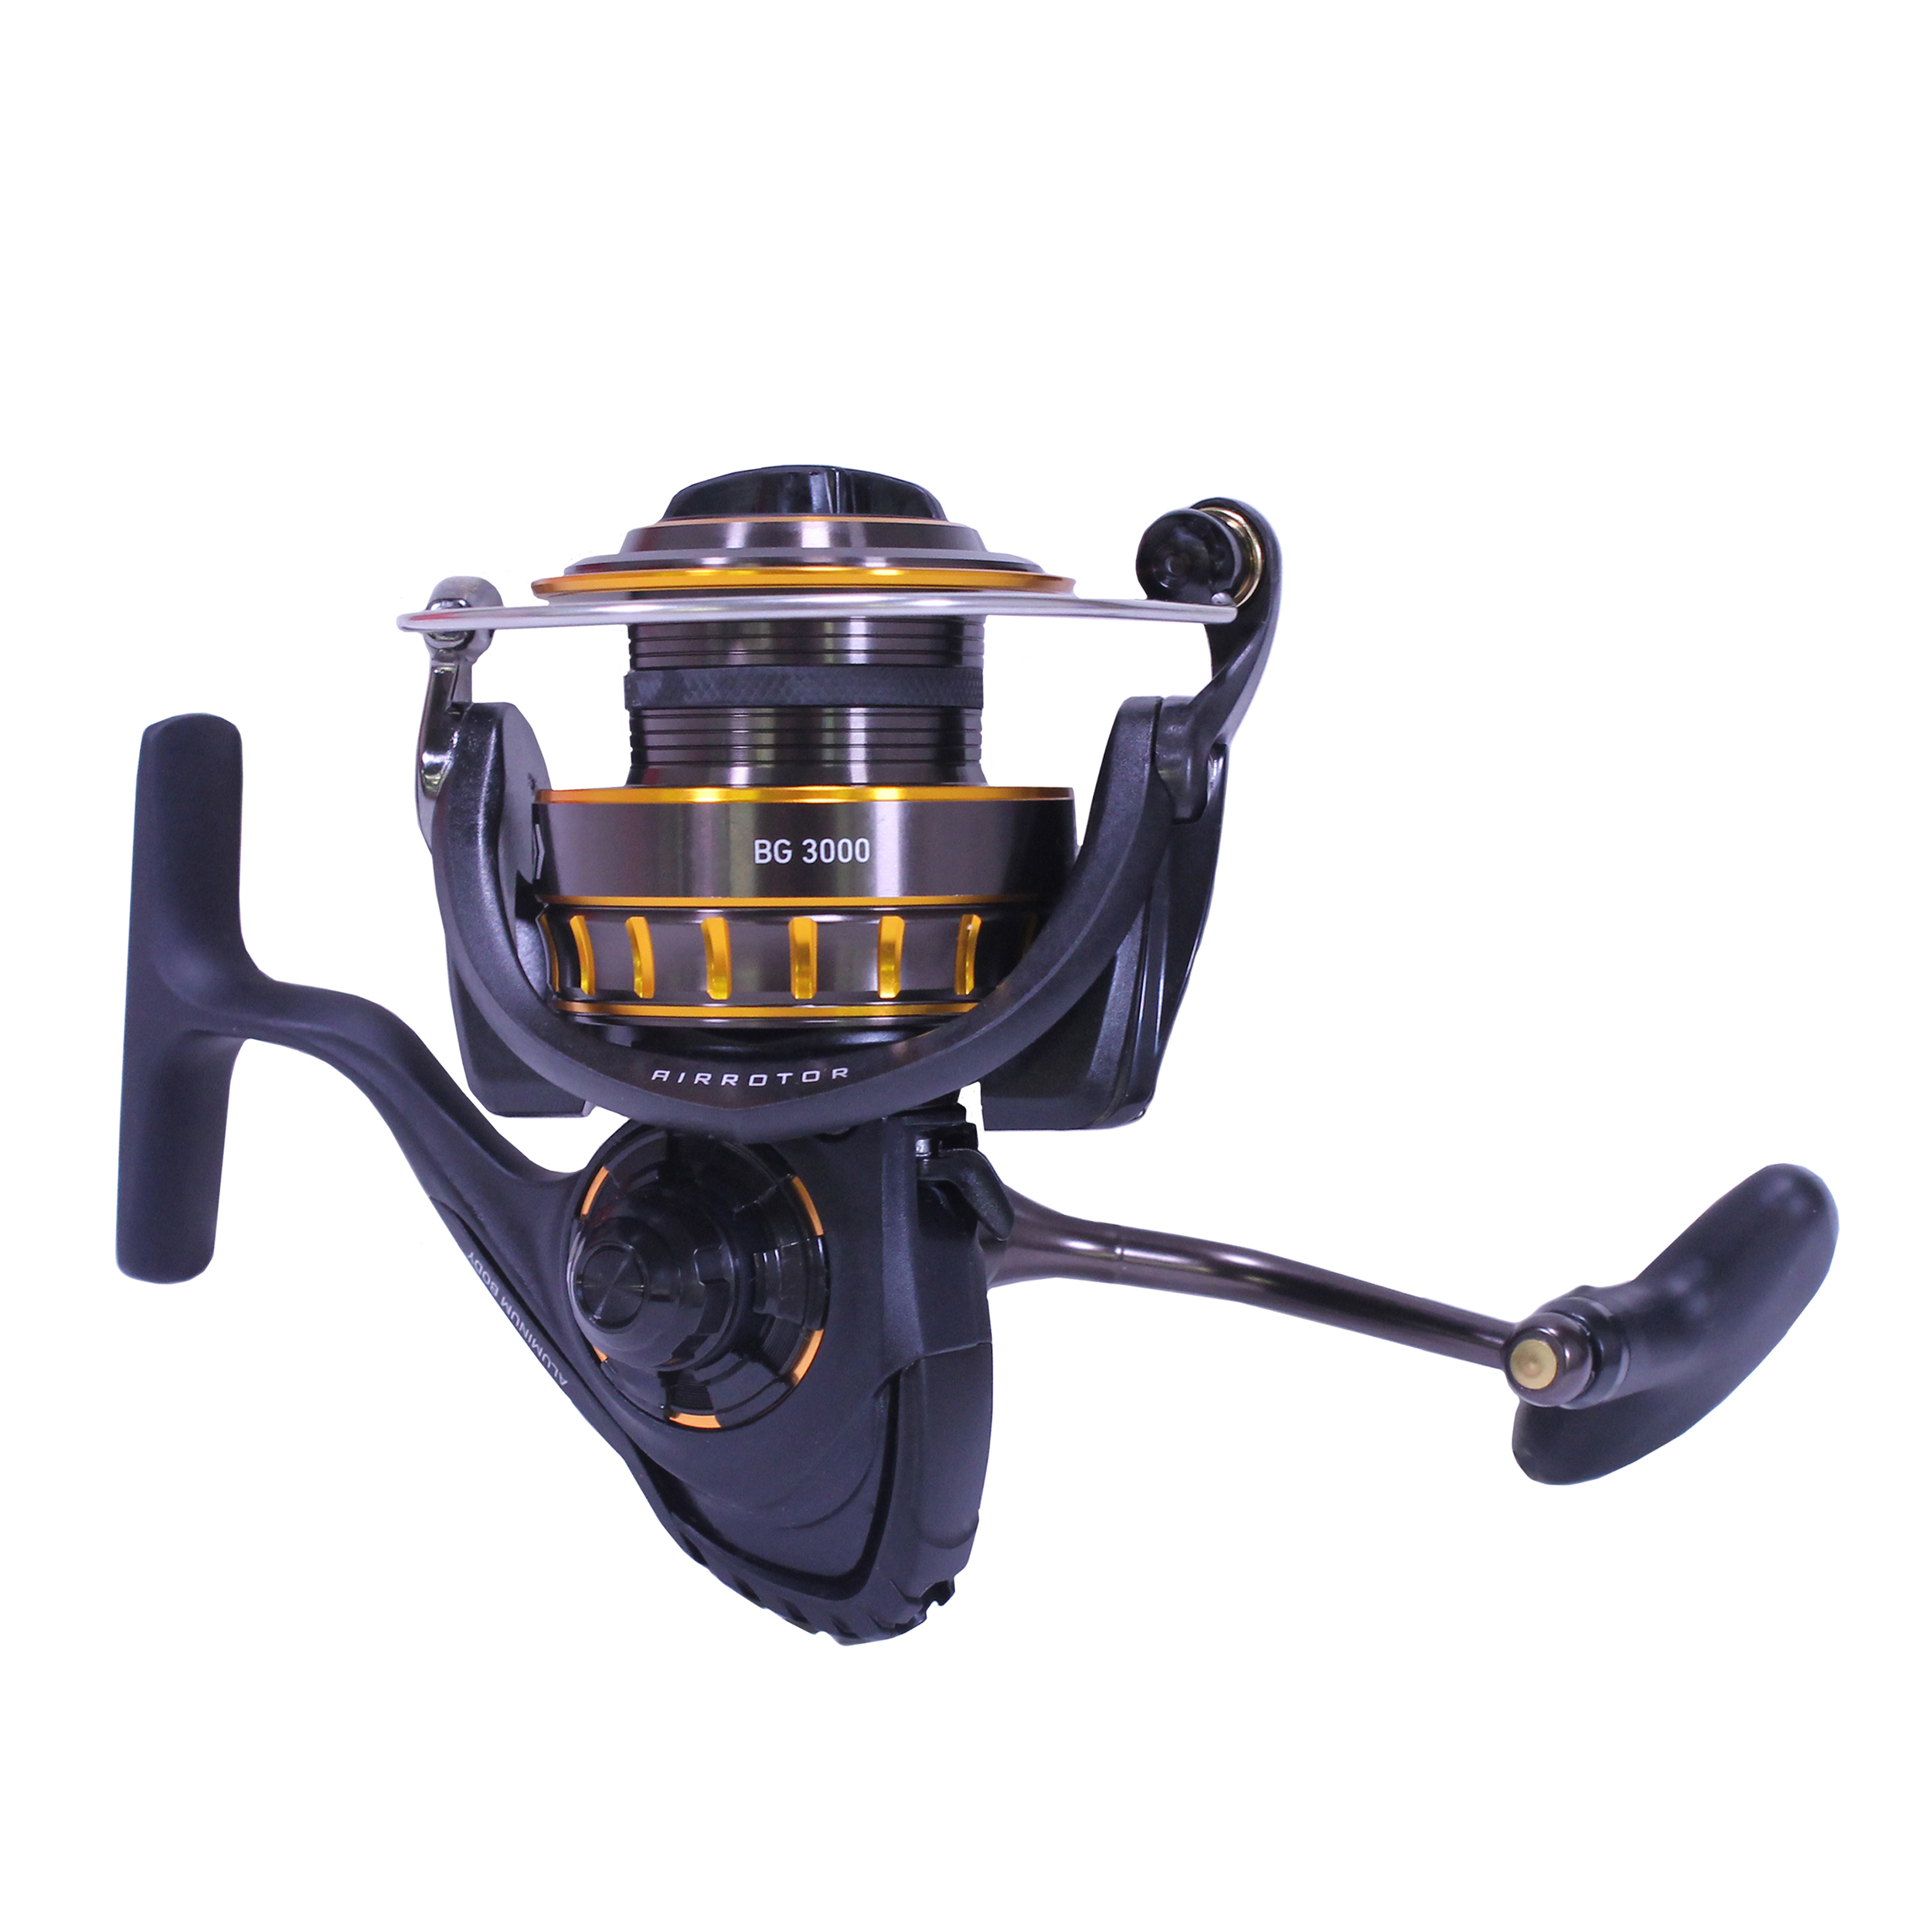 "Daiwa BG Saltwater Spinning Reel 3000, 5.6:1 Gear Ratio, 6+1 Bearings, 37.10"" Retrieve Rate, 15.40 lb Max Drag"